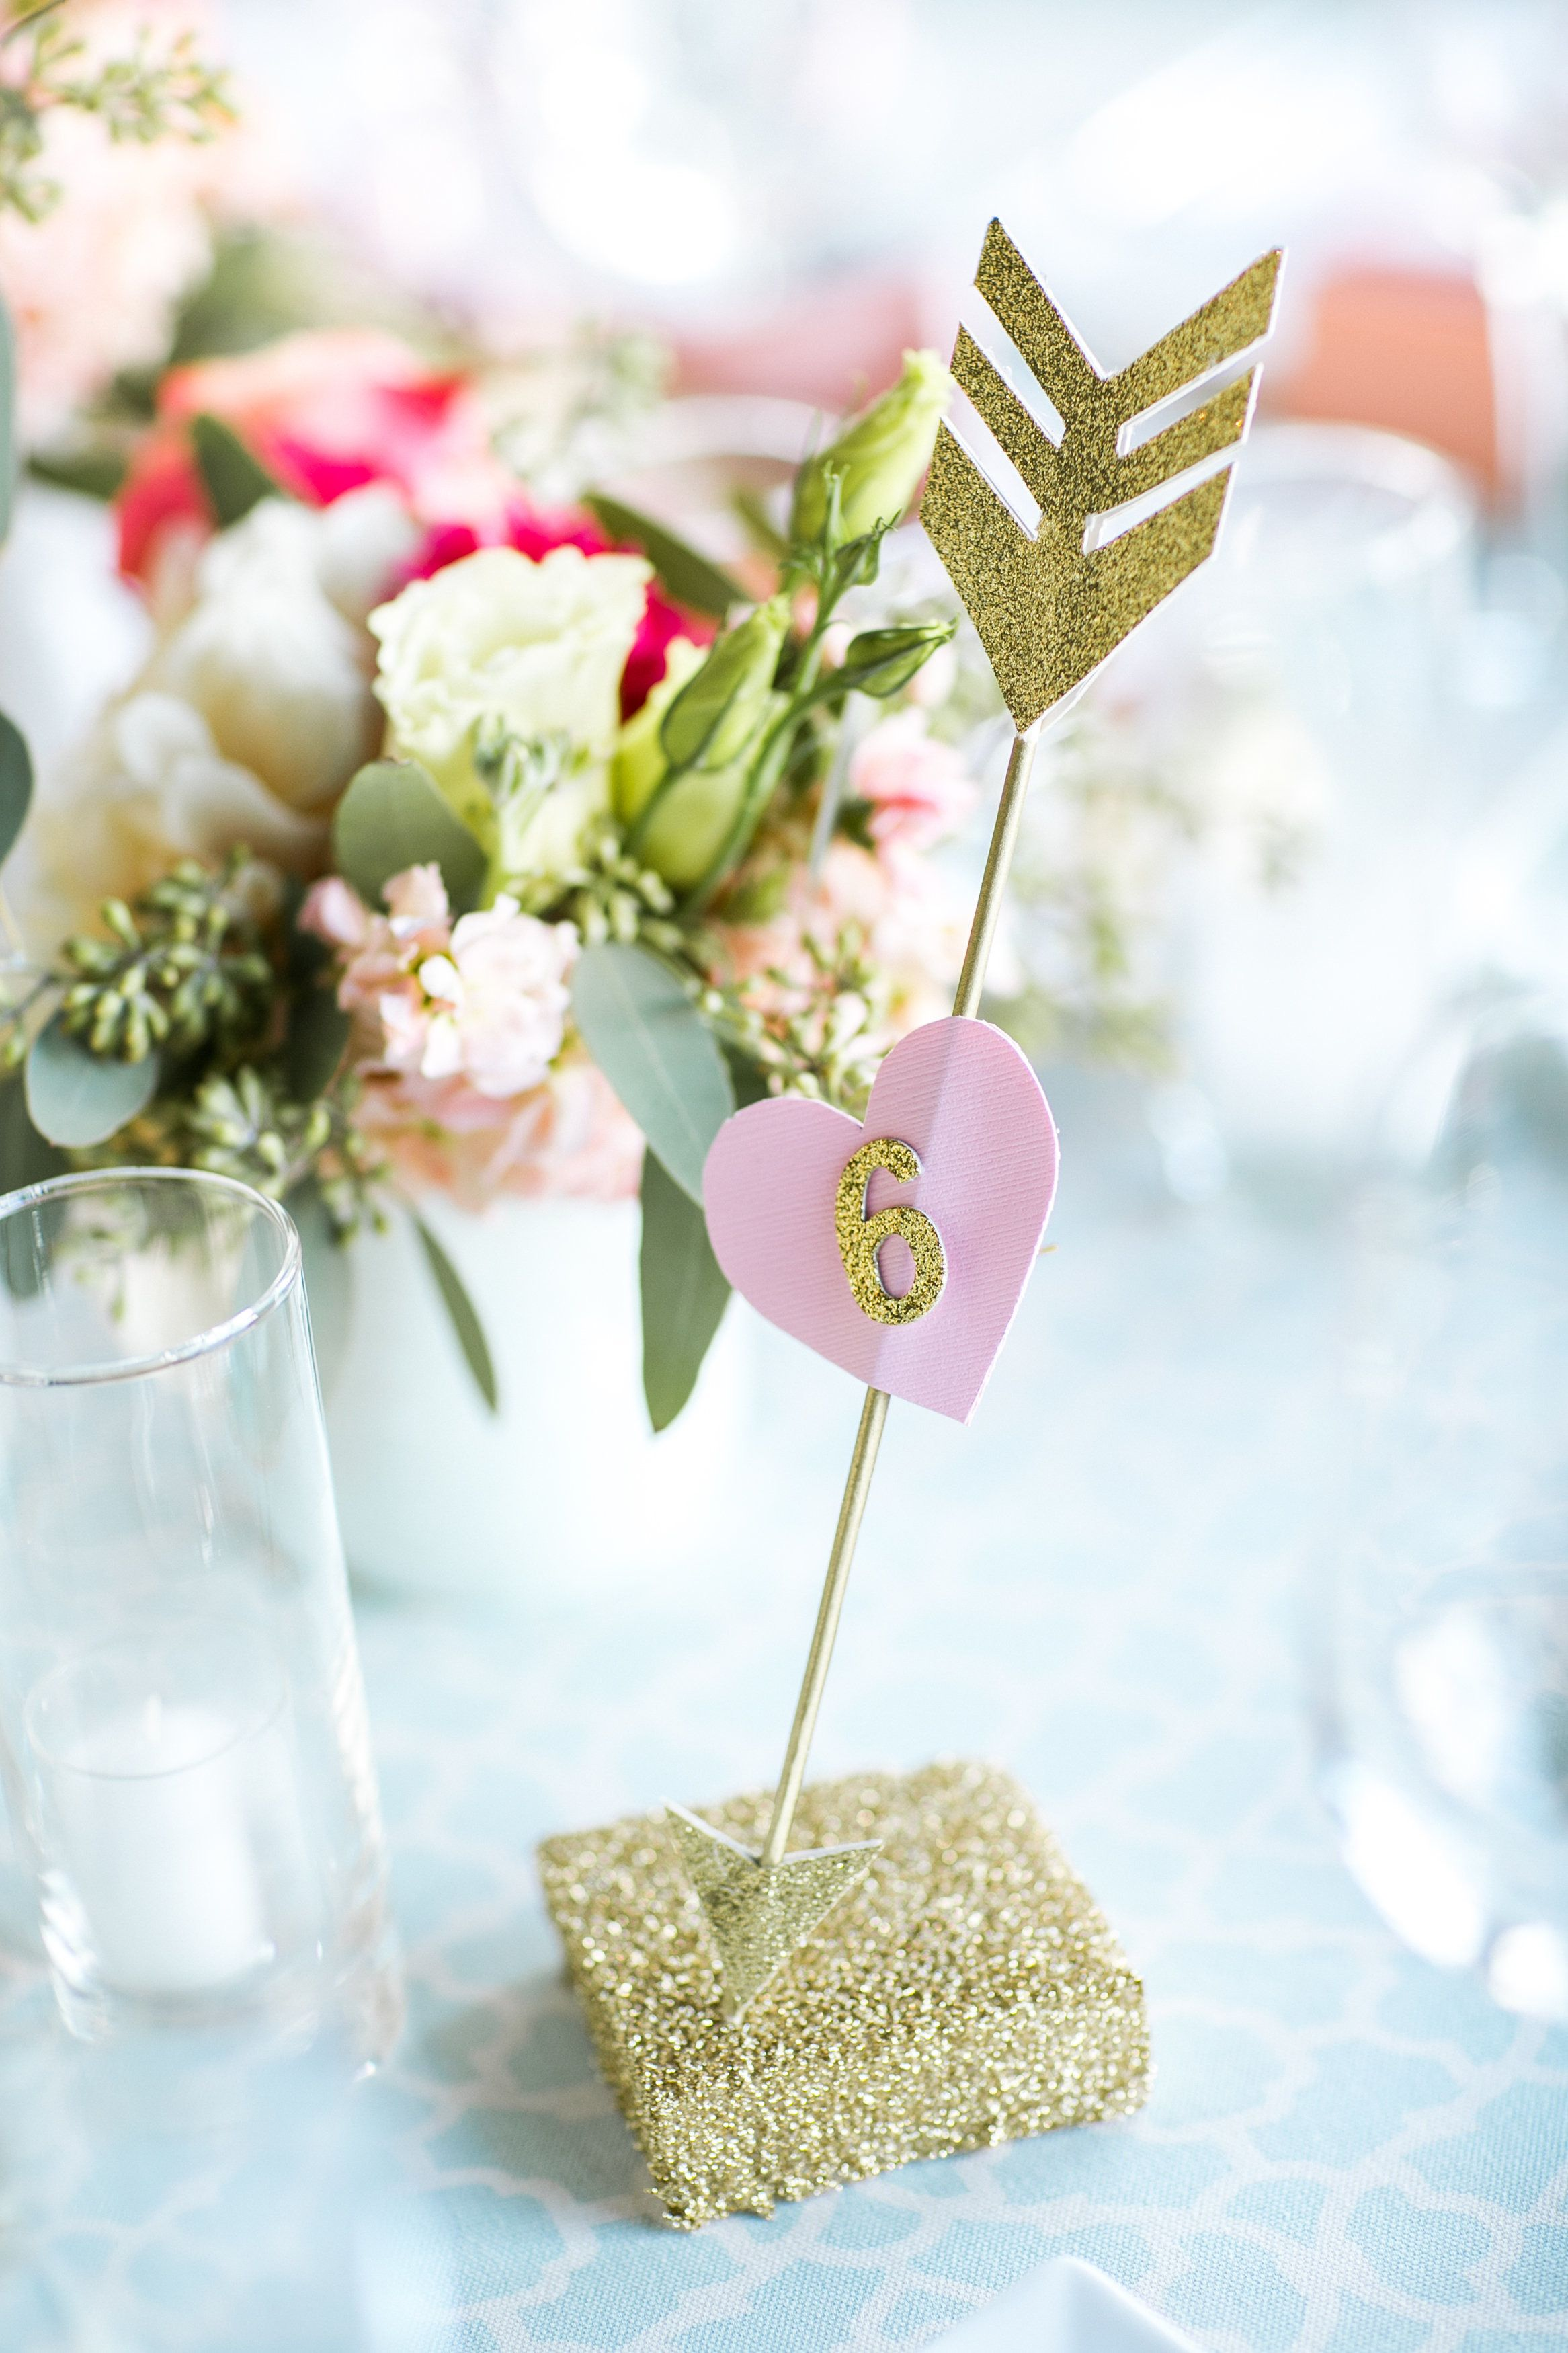 Just In Time For Valentines Day This Pink And Red Heart Themed Wedding Is The Perfect Mix Of Modern Aesthetic Whimsical Design Planned By Charmed